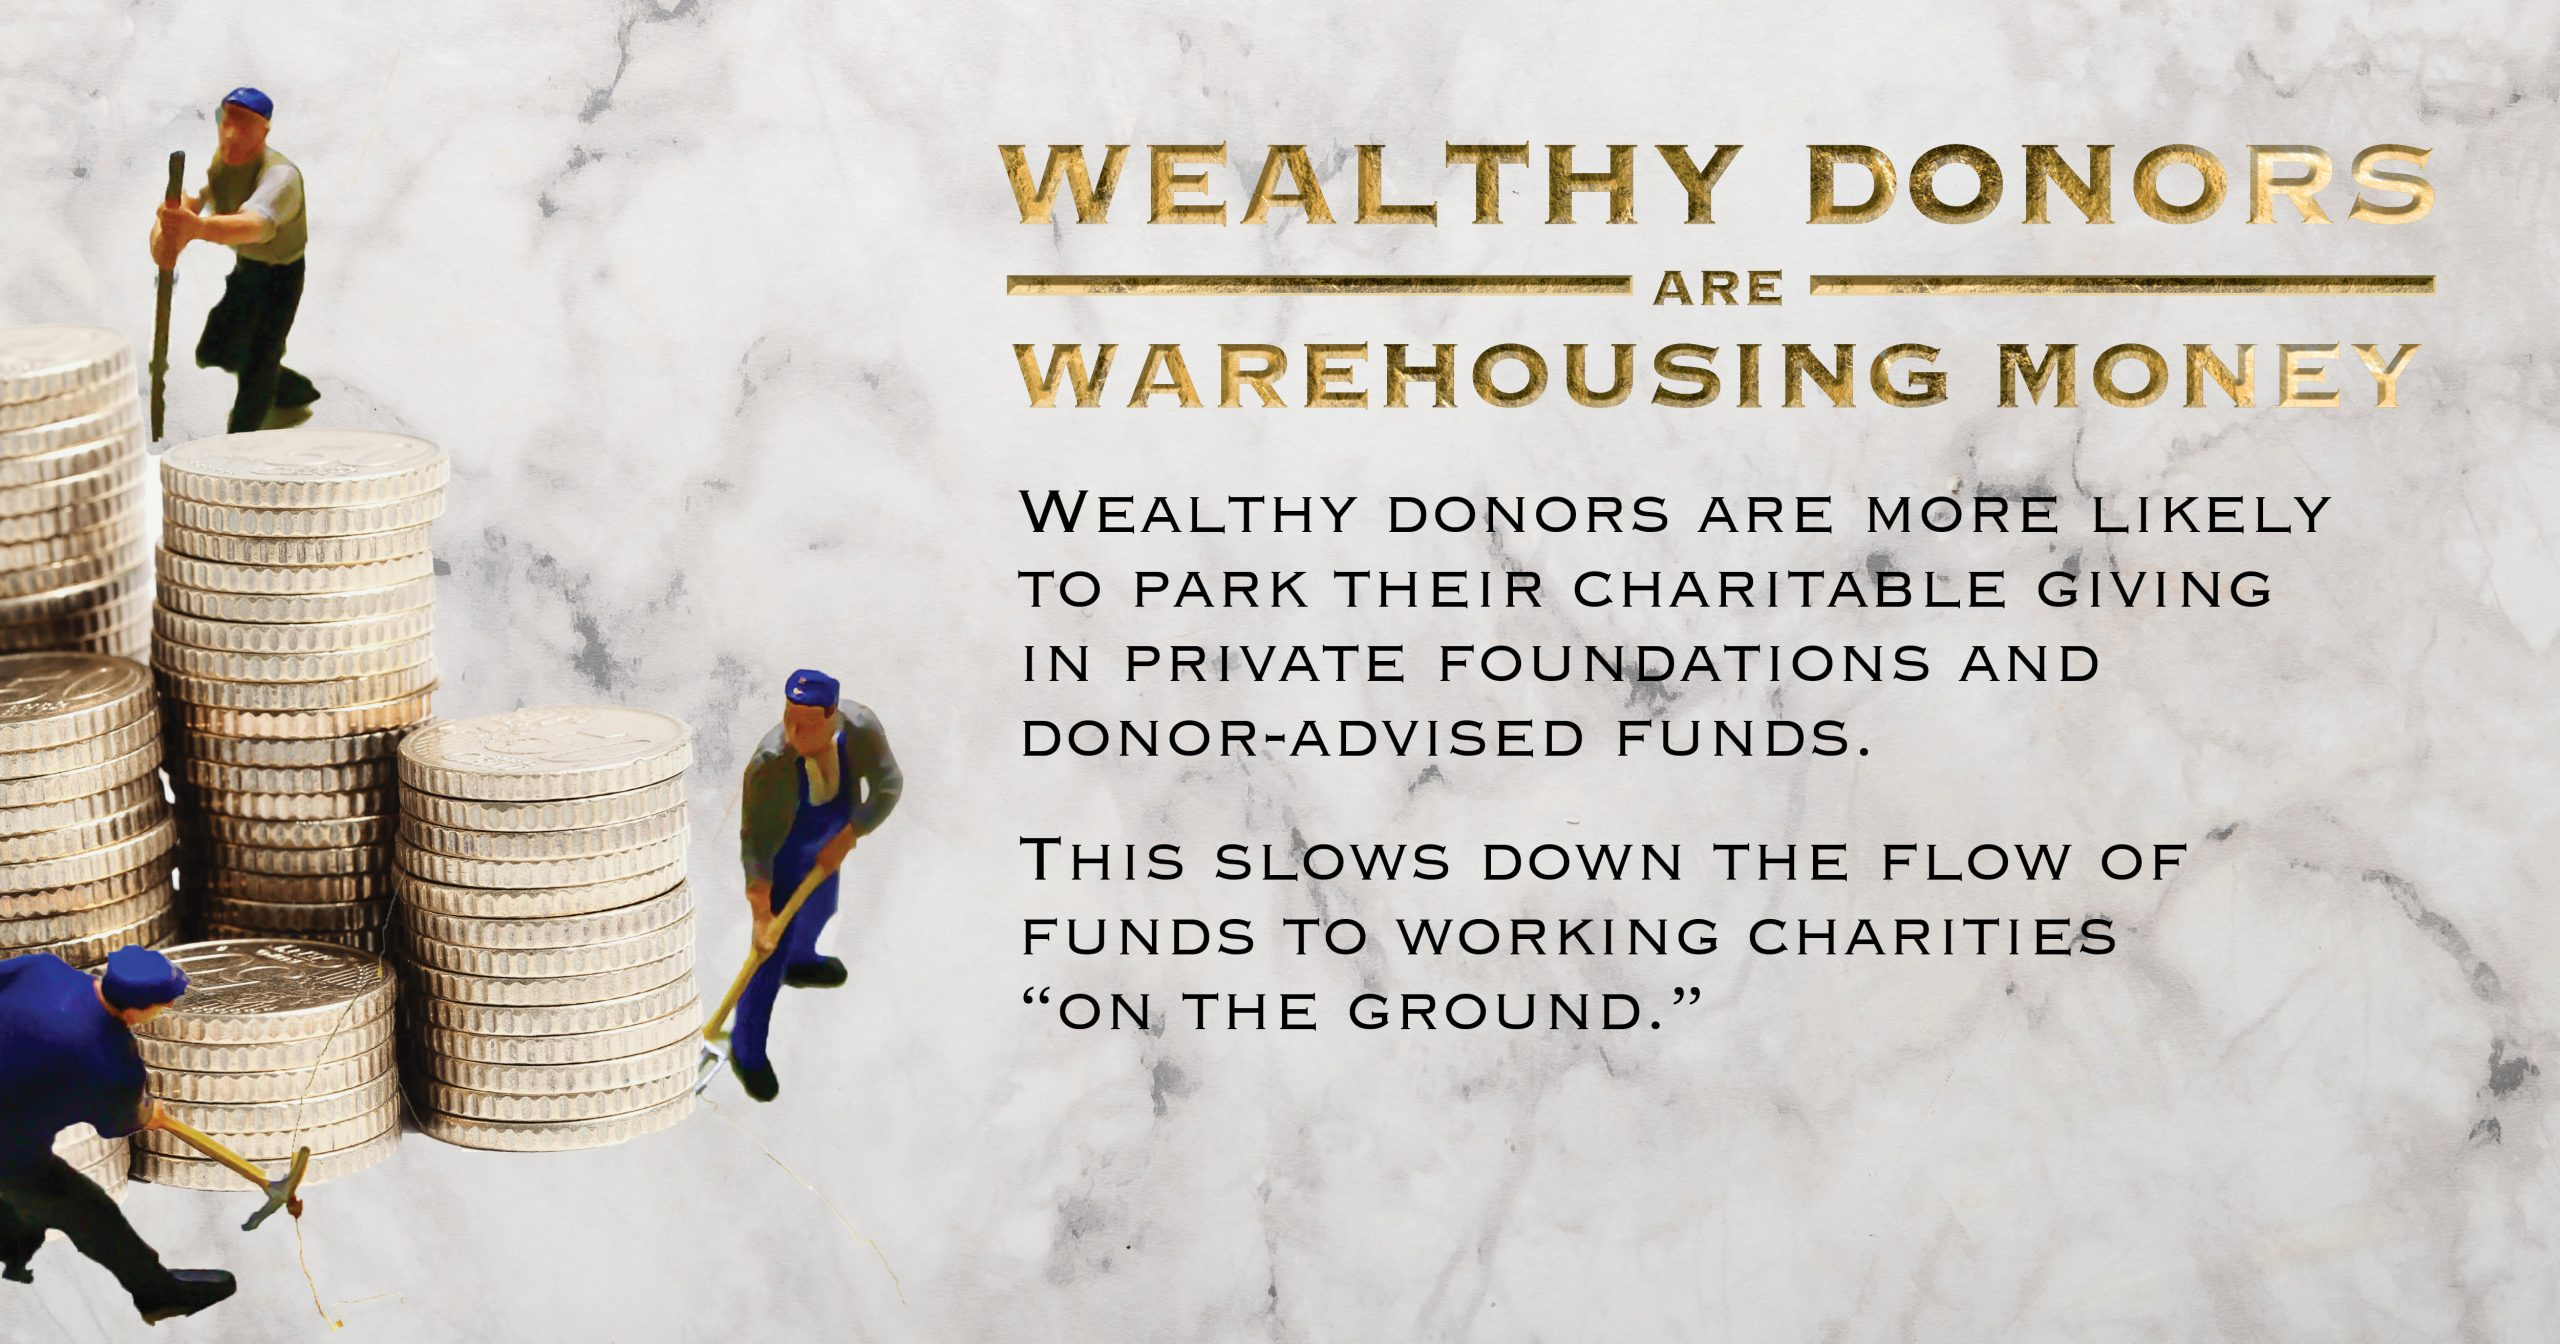 "Wealthy donors are warehousing money. Wealthy donors are more likely to park their charitable giving in private foundations and donor-advised funds. This slows down the flow of funds to working charities ""on the ground""."